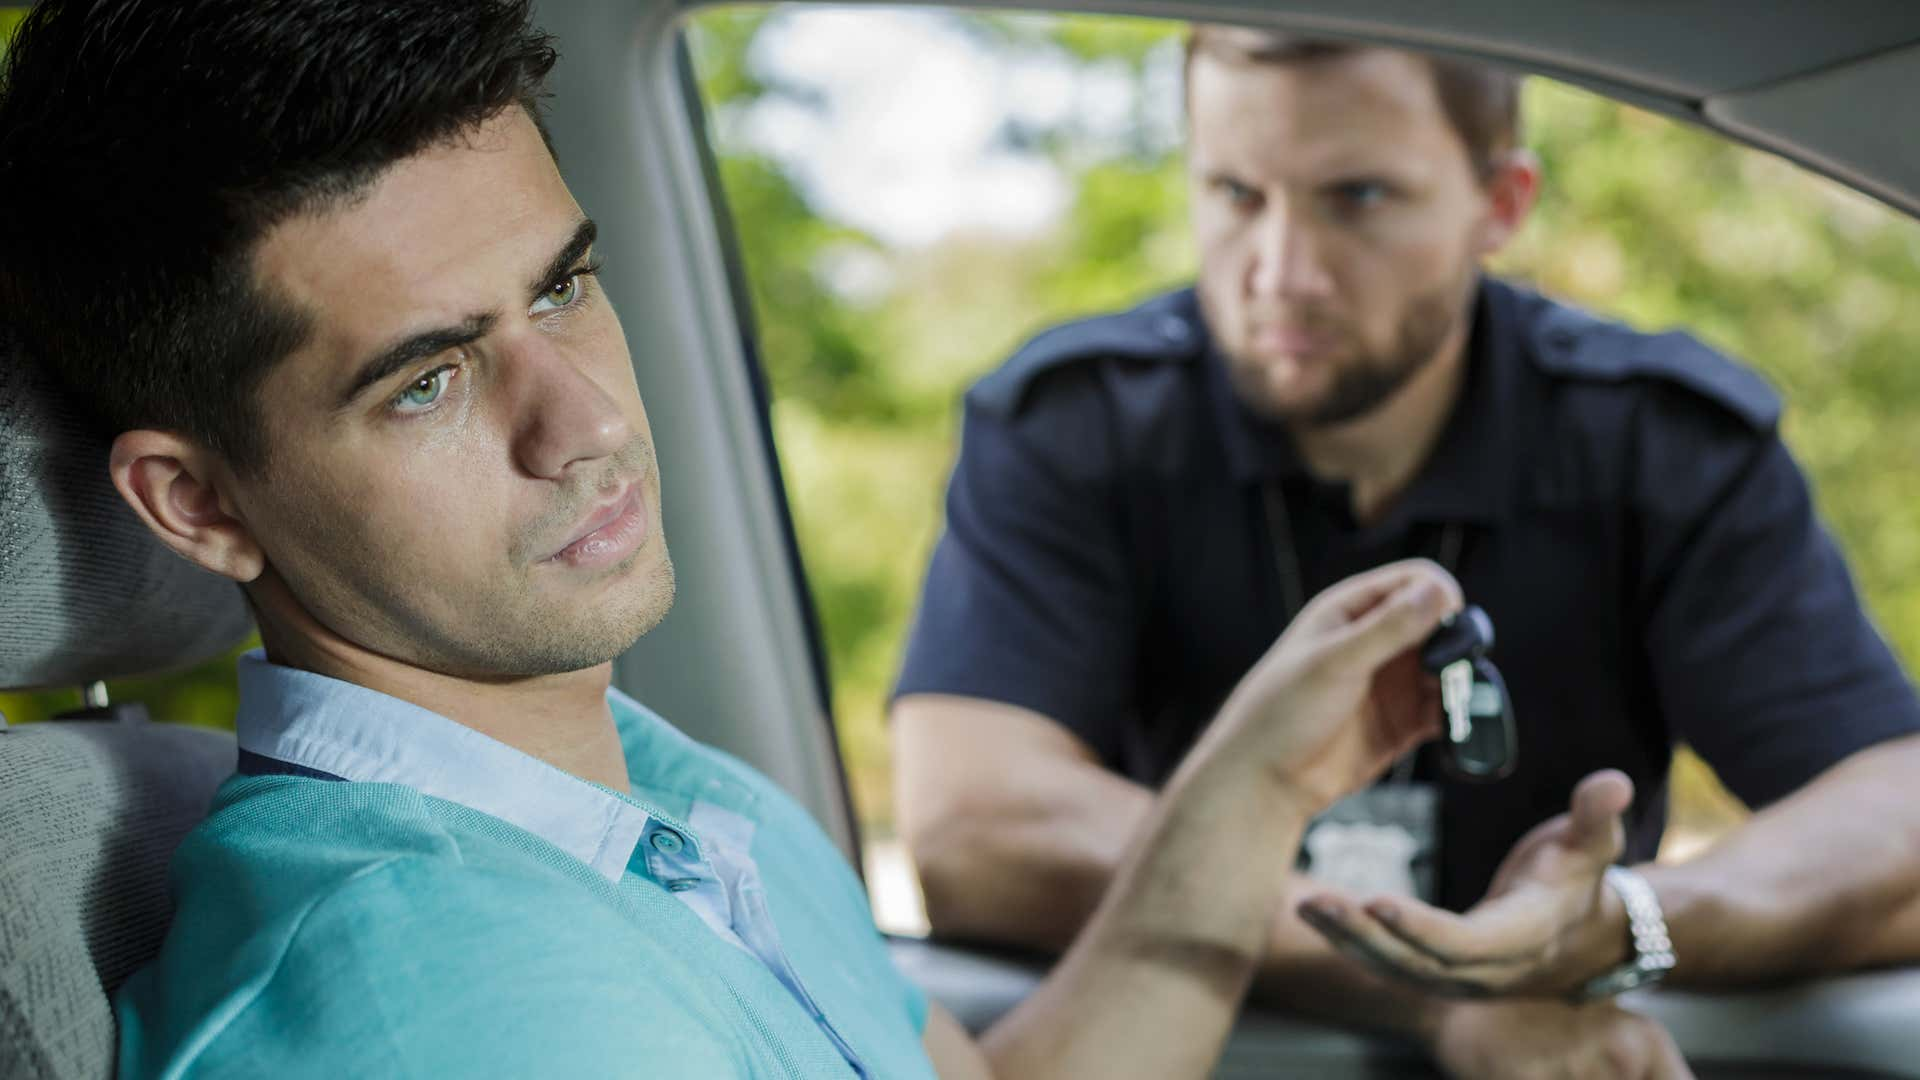 You could lose your license if you end up with too many tickets.